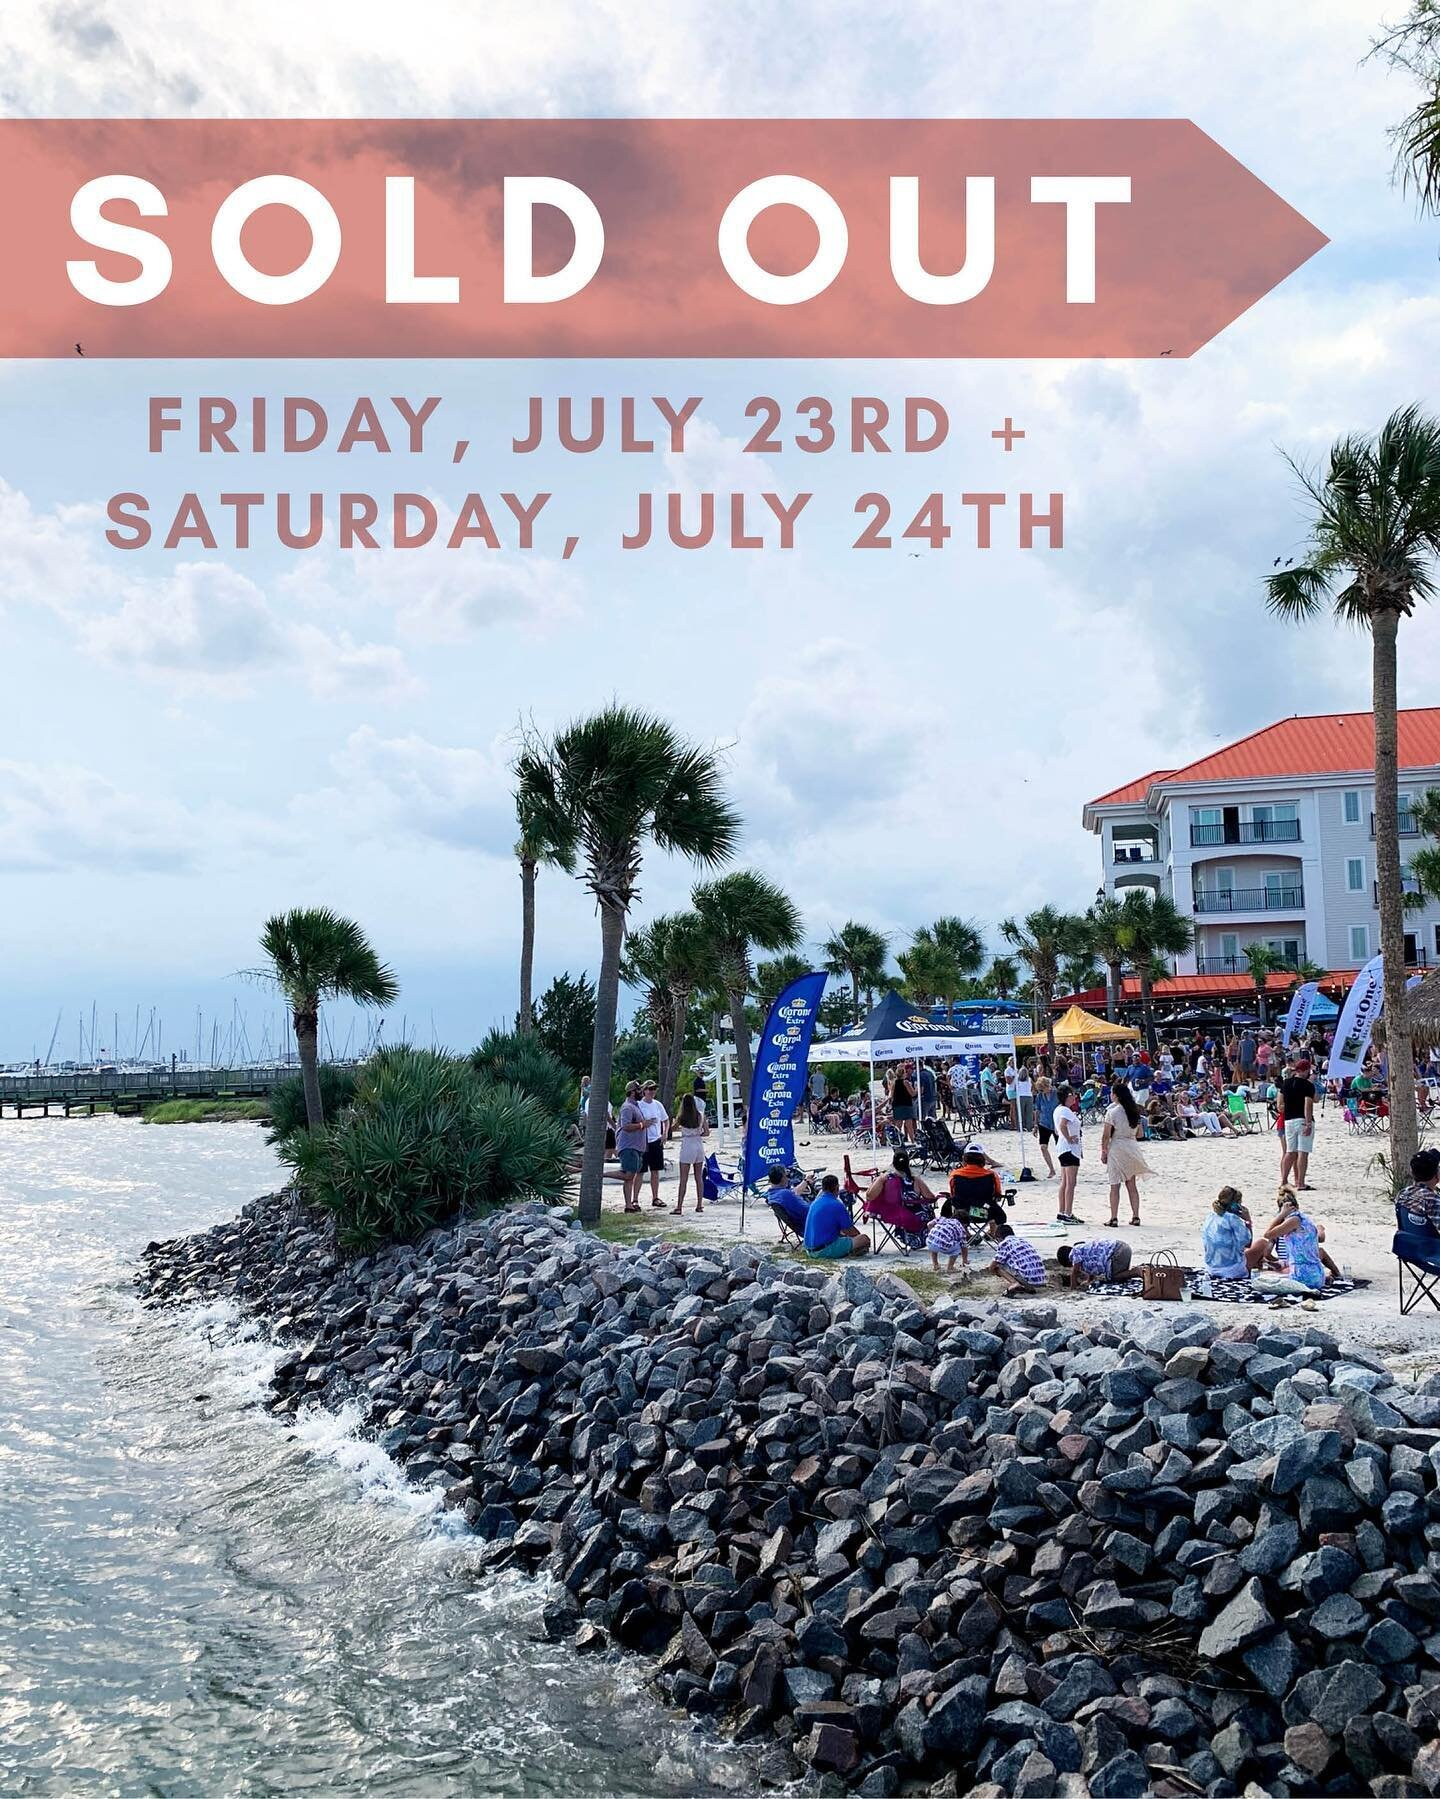 This weekend's Party at the Point shows with @mrhollandsoats (7/23) and @thedubplates (7/24) are SOLD OUT!   Go ahead and get your tickets to our LAST Party at the Point show with @rockthe90sofficial on 7/30 via the link in our bio!!  Special thanks to @cheerssc @ketelonebotanical @ketelone @corona @modelousa @thebridgeat1055 @my98rock @redsicehouse @starlingchevroletmp @charlestonharborresort @charlestonharbormarina @chasharborfishhouse